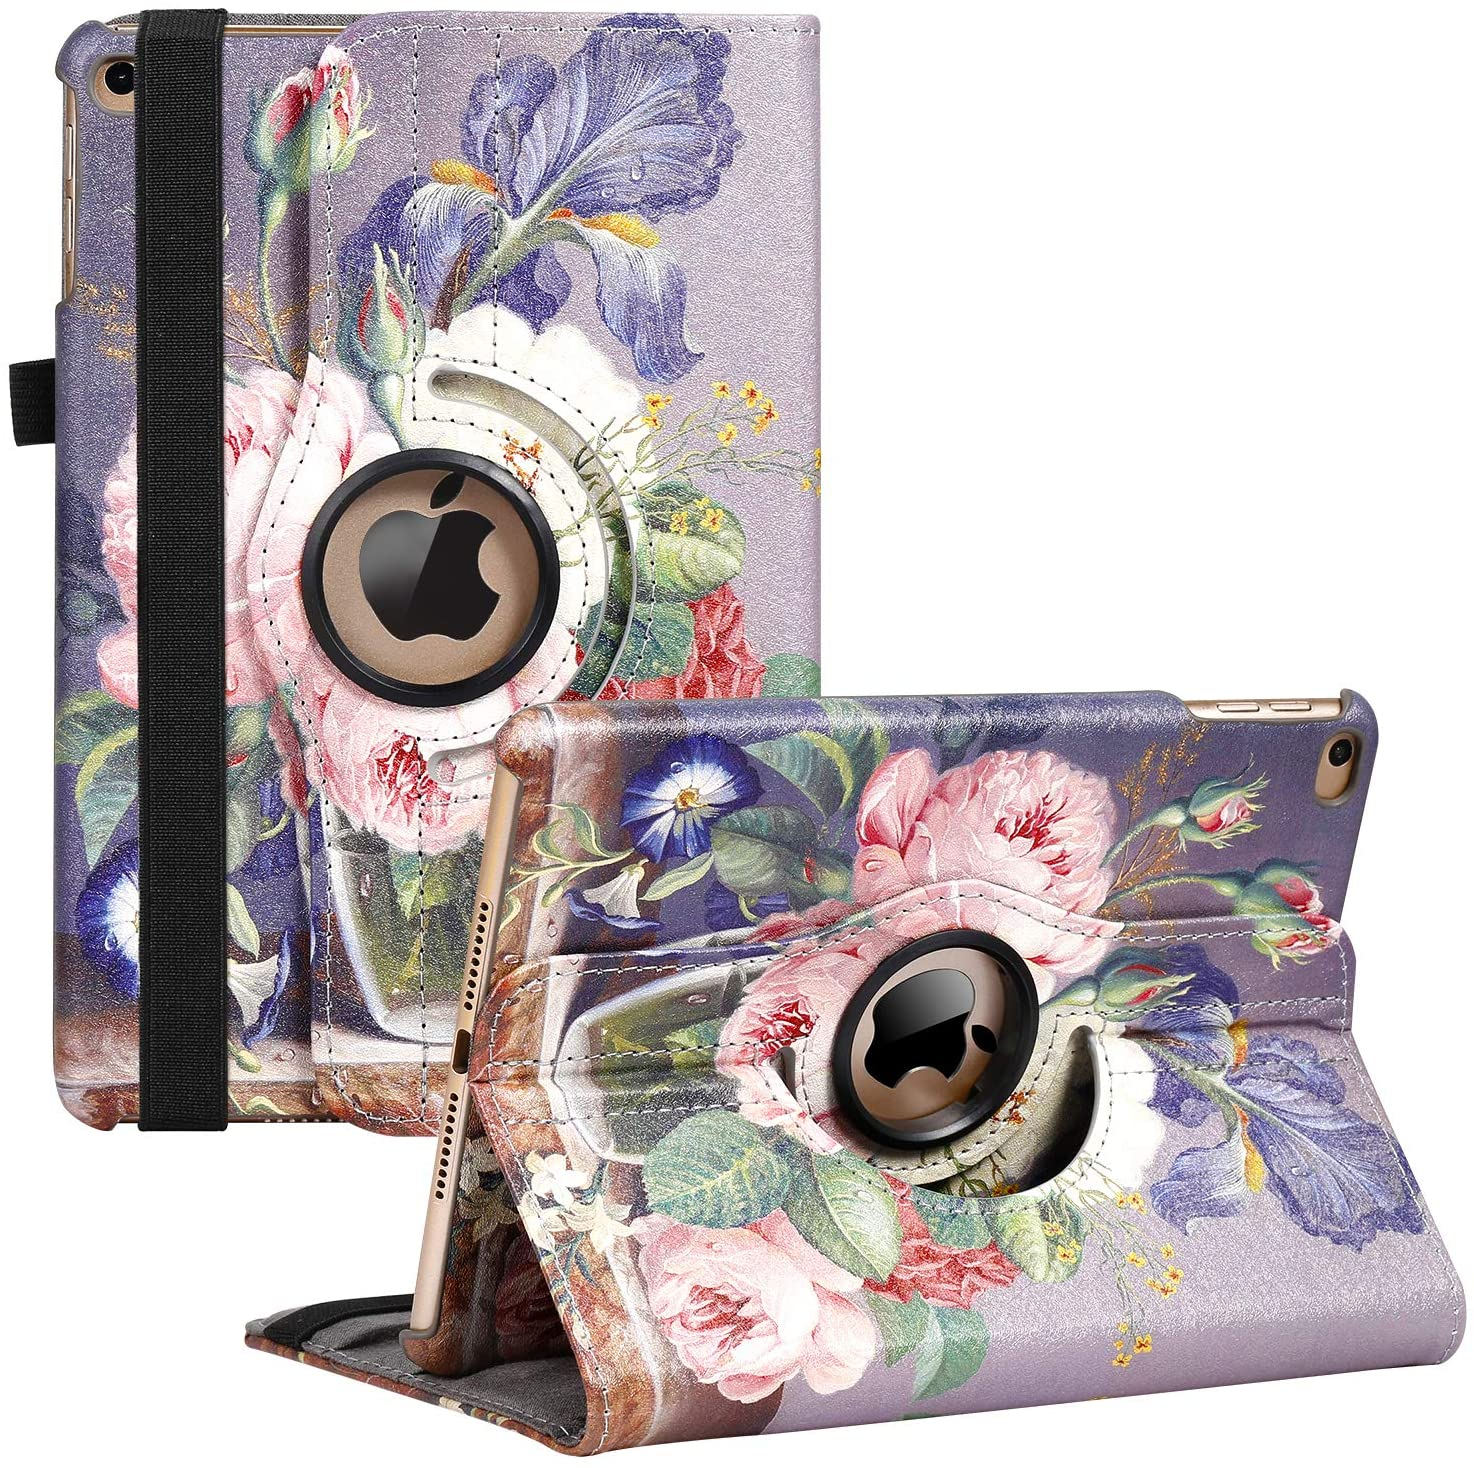 iPad Mini 1 Branded goods 2 3 Case - Rotating Stand Degree Cover with New Free Shipping 360